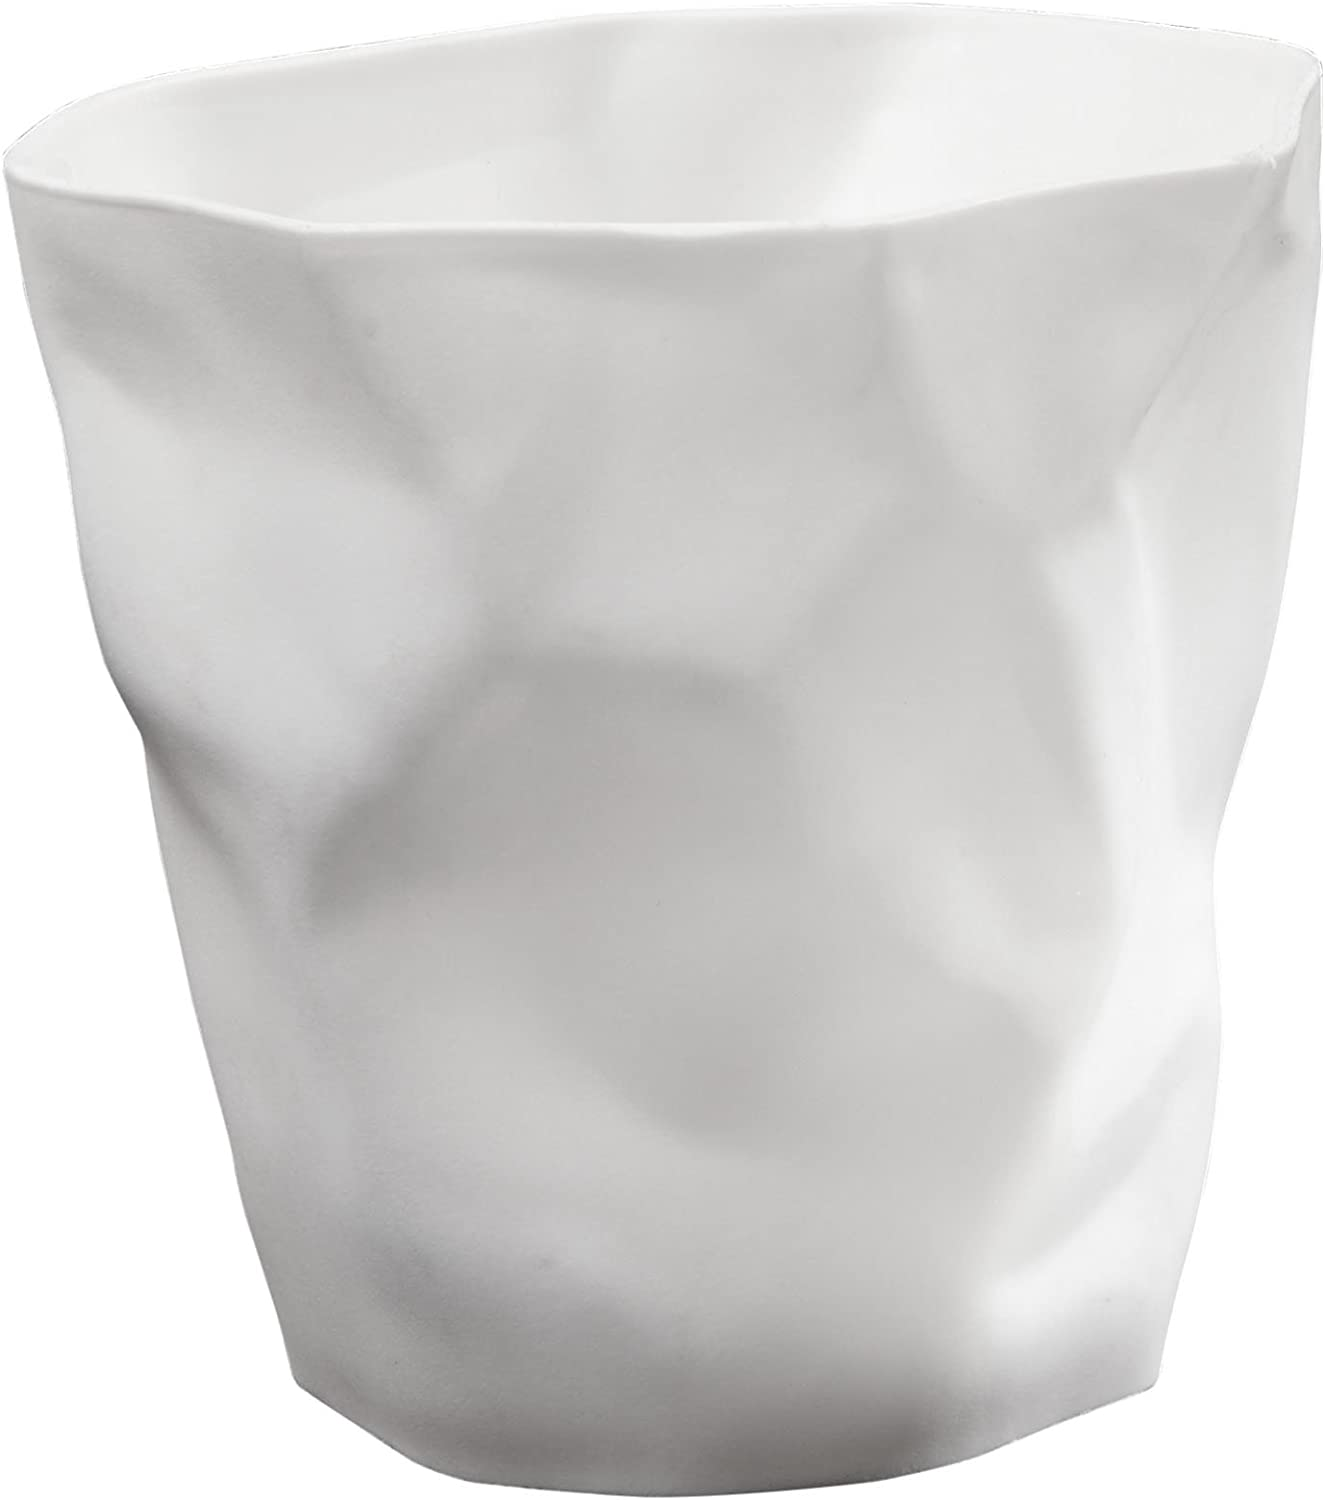 Our shop most popular Modway Lava Pencil Holder White half in